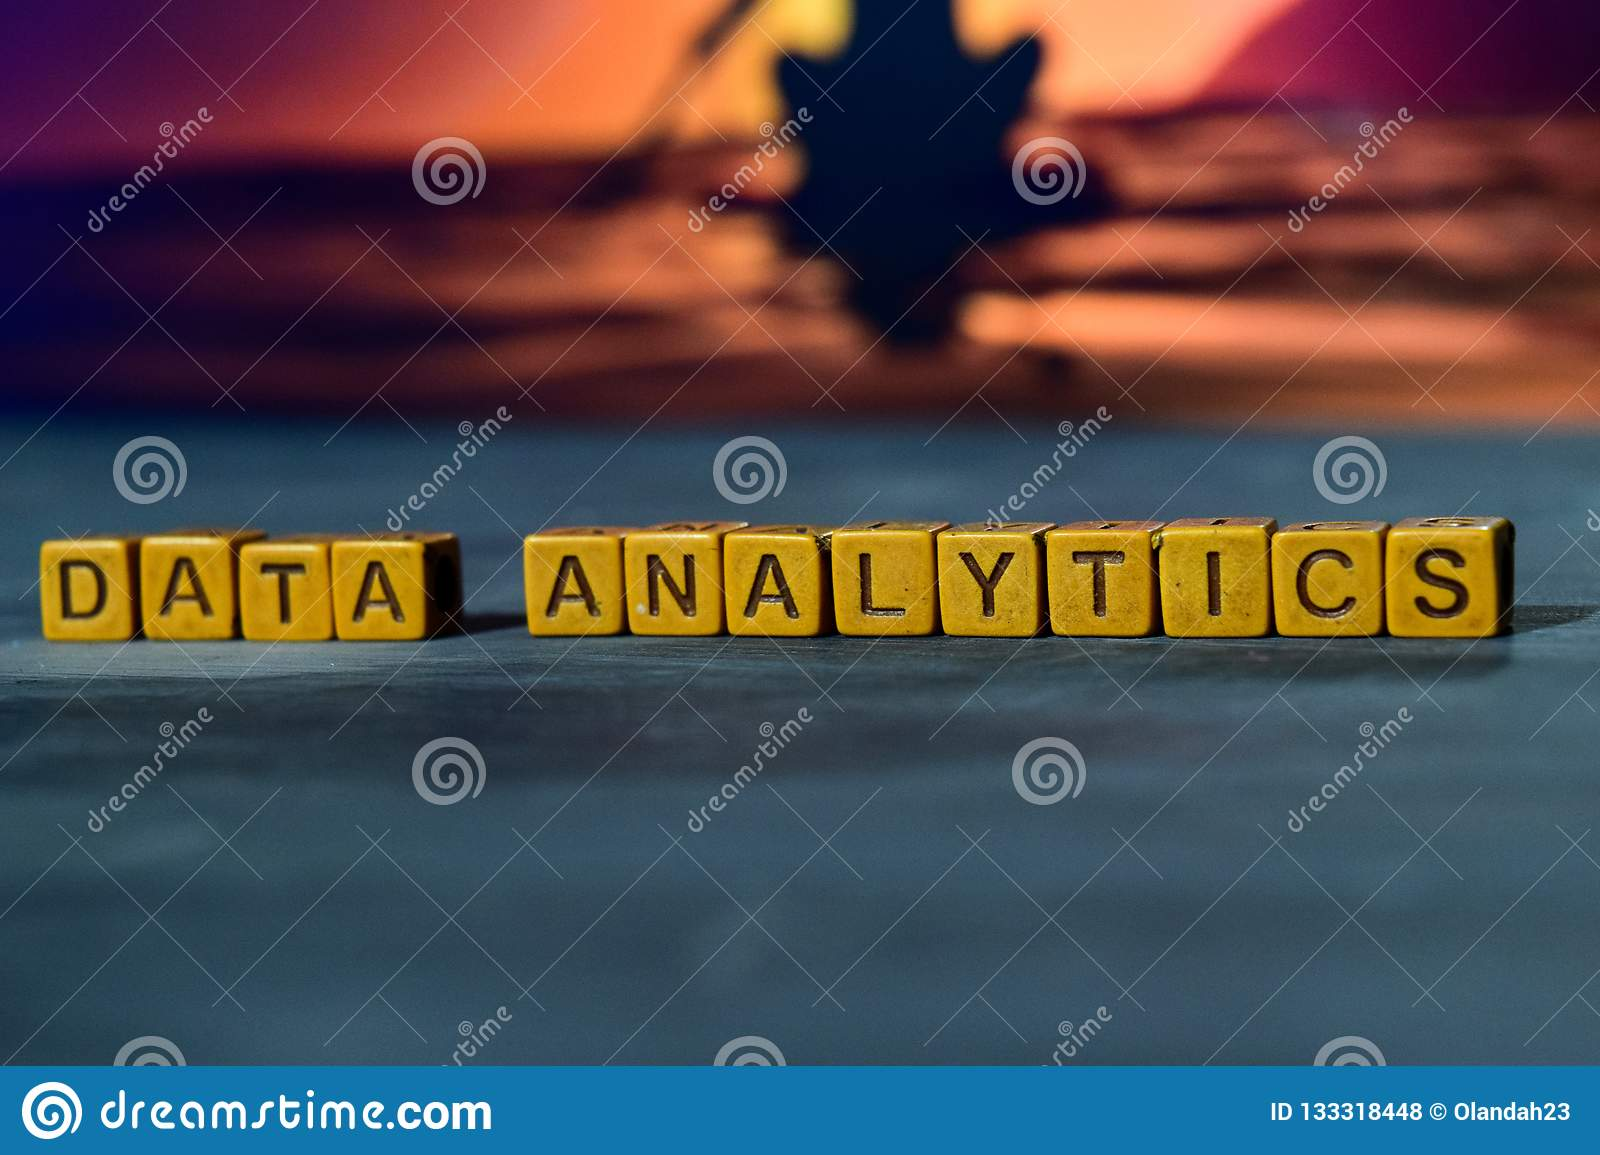 Data analytics on wooden blocks. Cross processed image with bokeh background